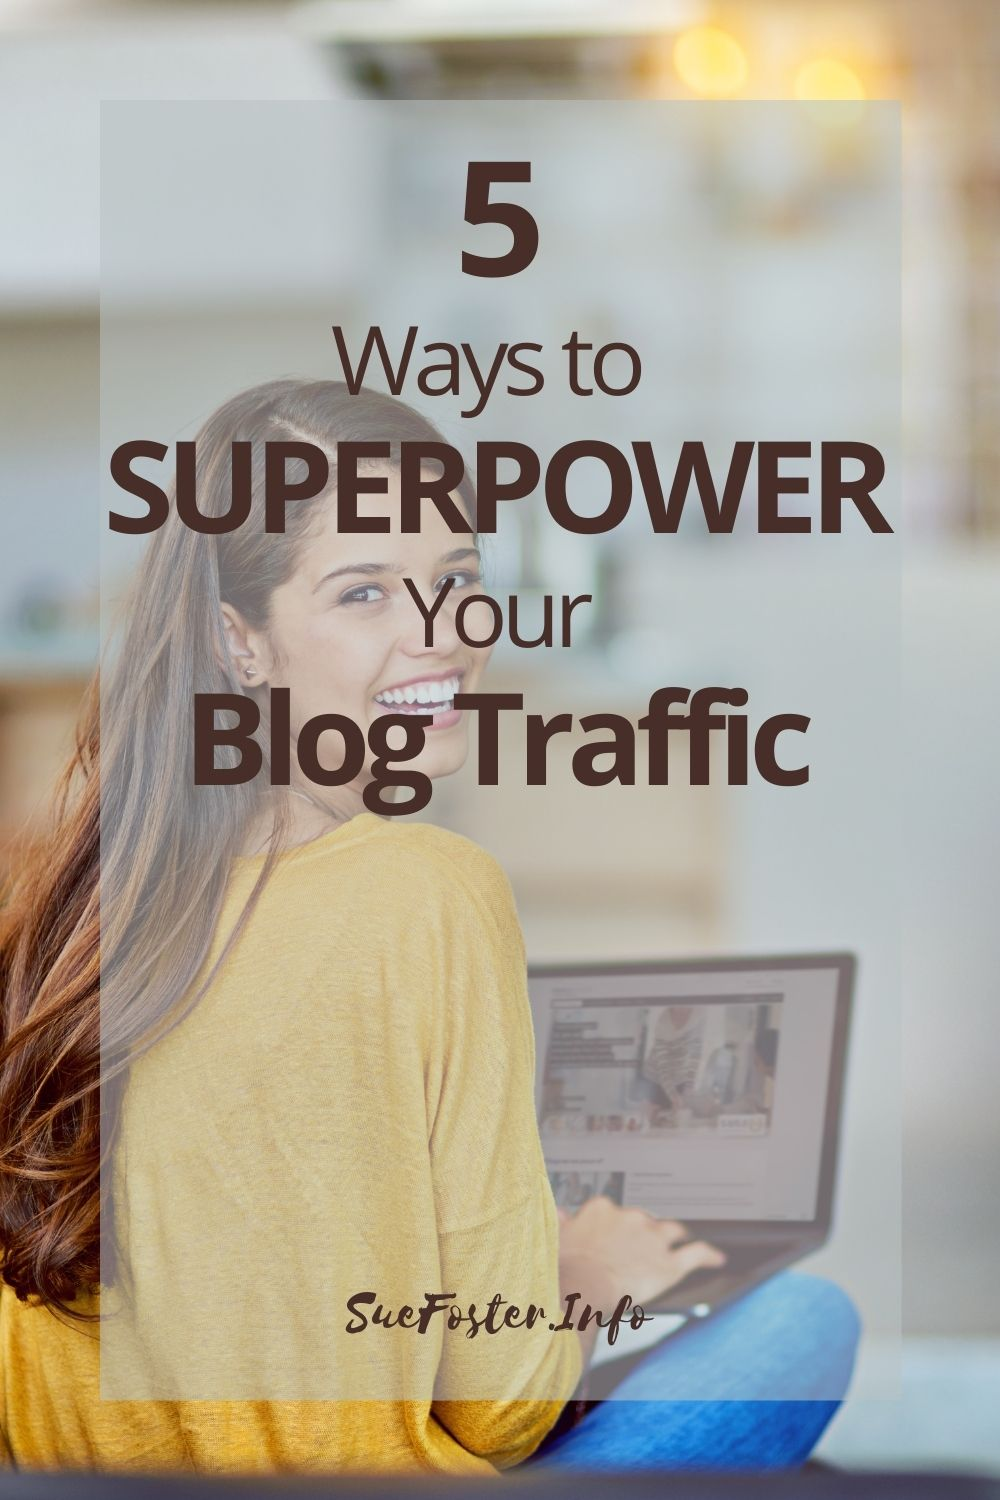 Five Ways to Superpower Your Blog Traffic